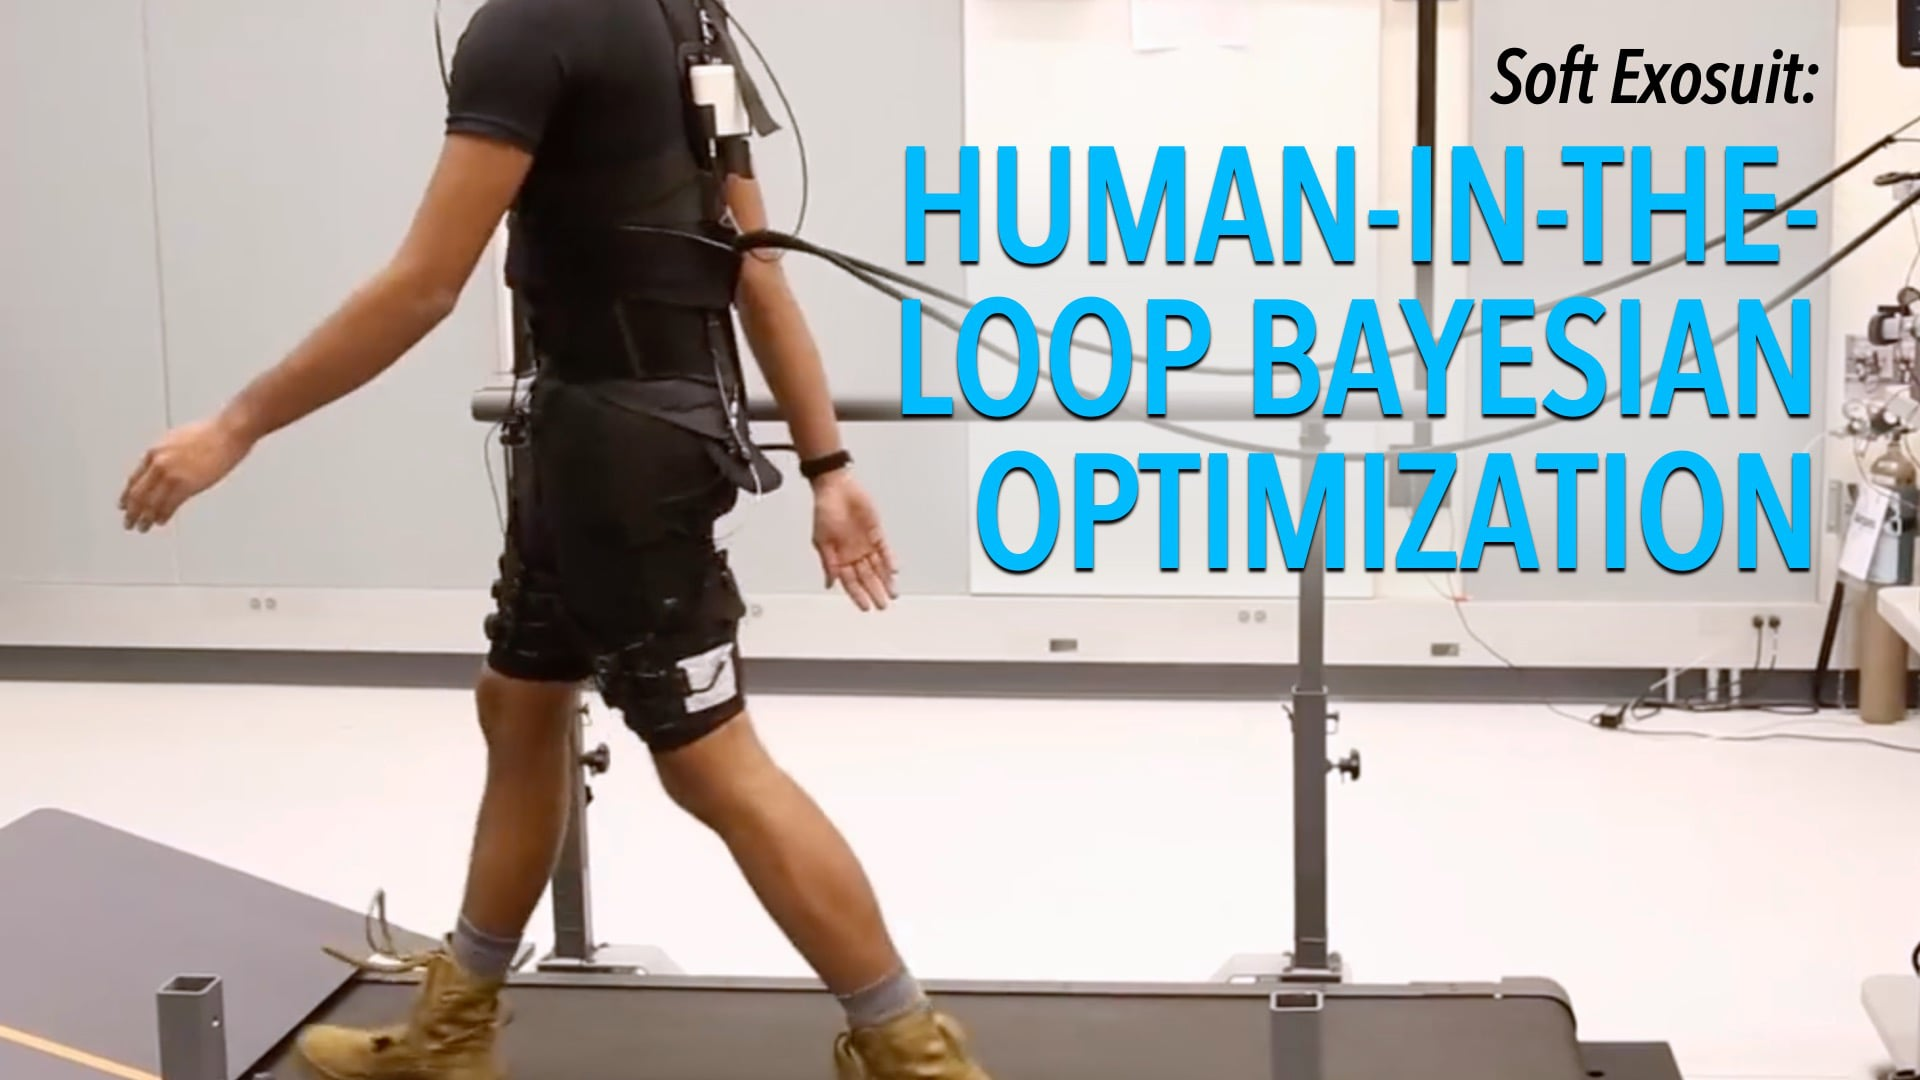 Soft Exosuit: Human-in-the-Loop Bayesian Optimization